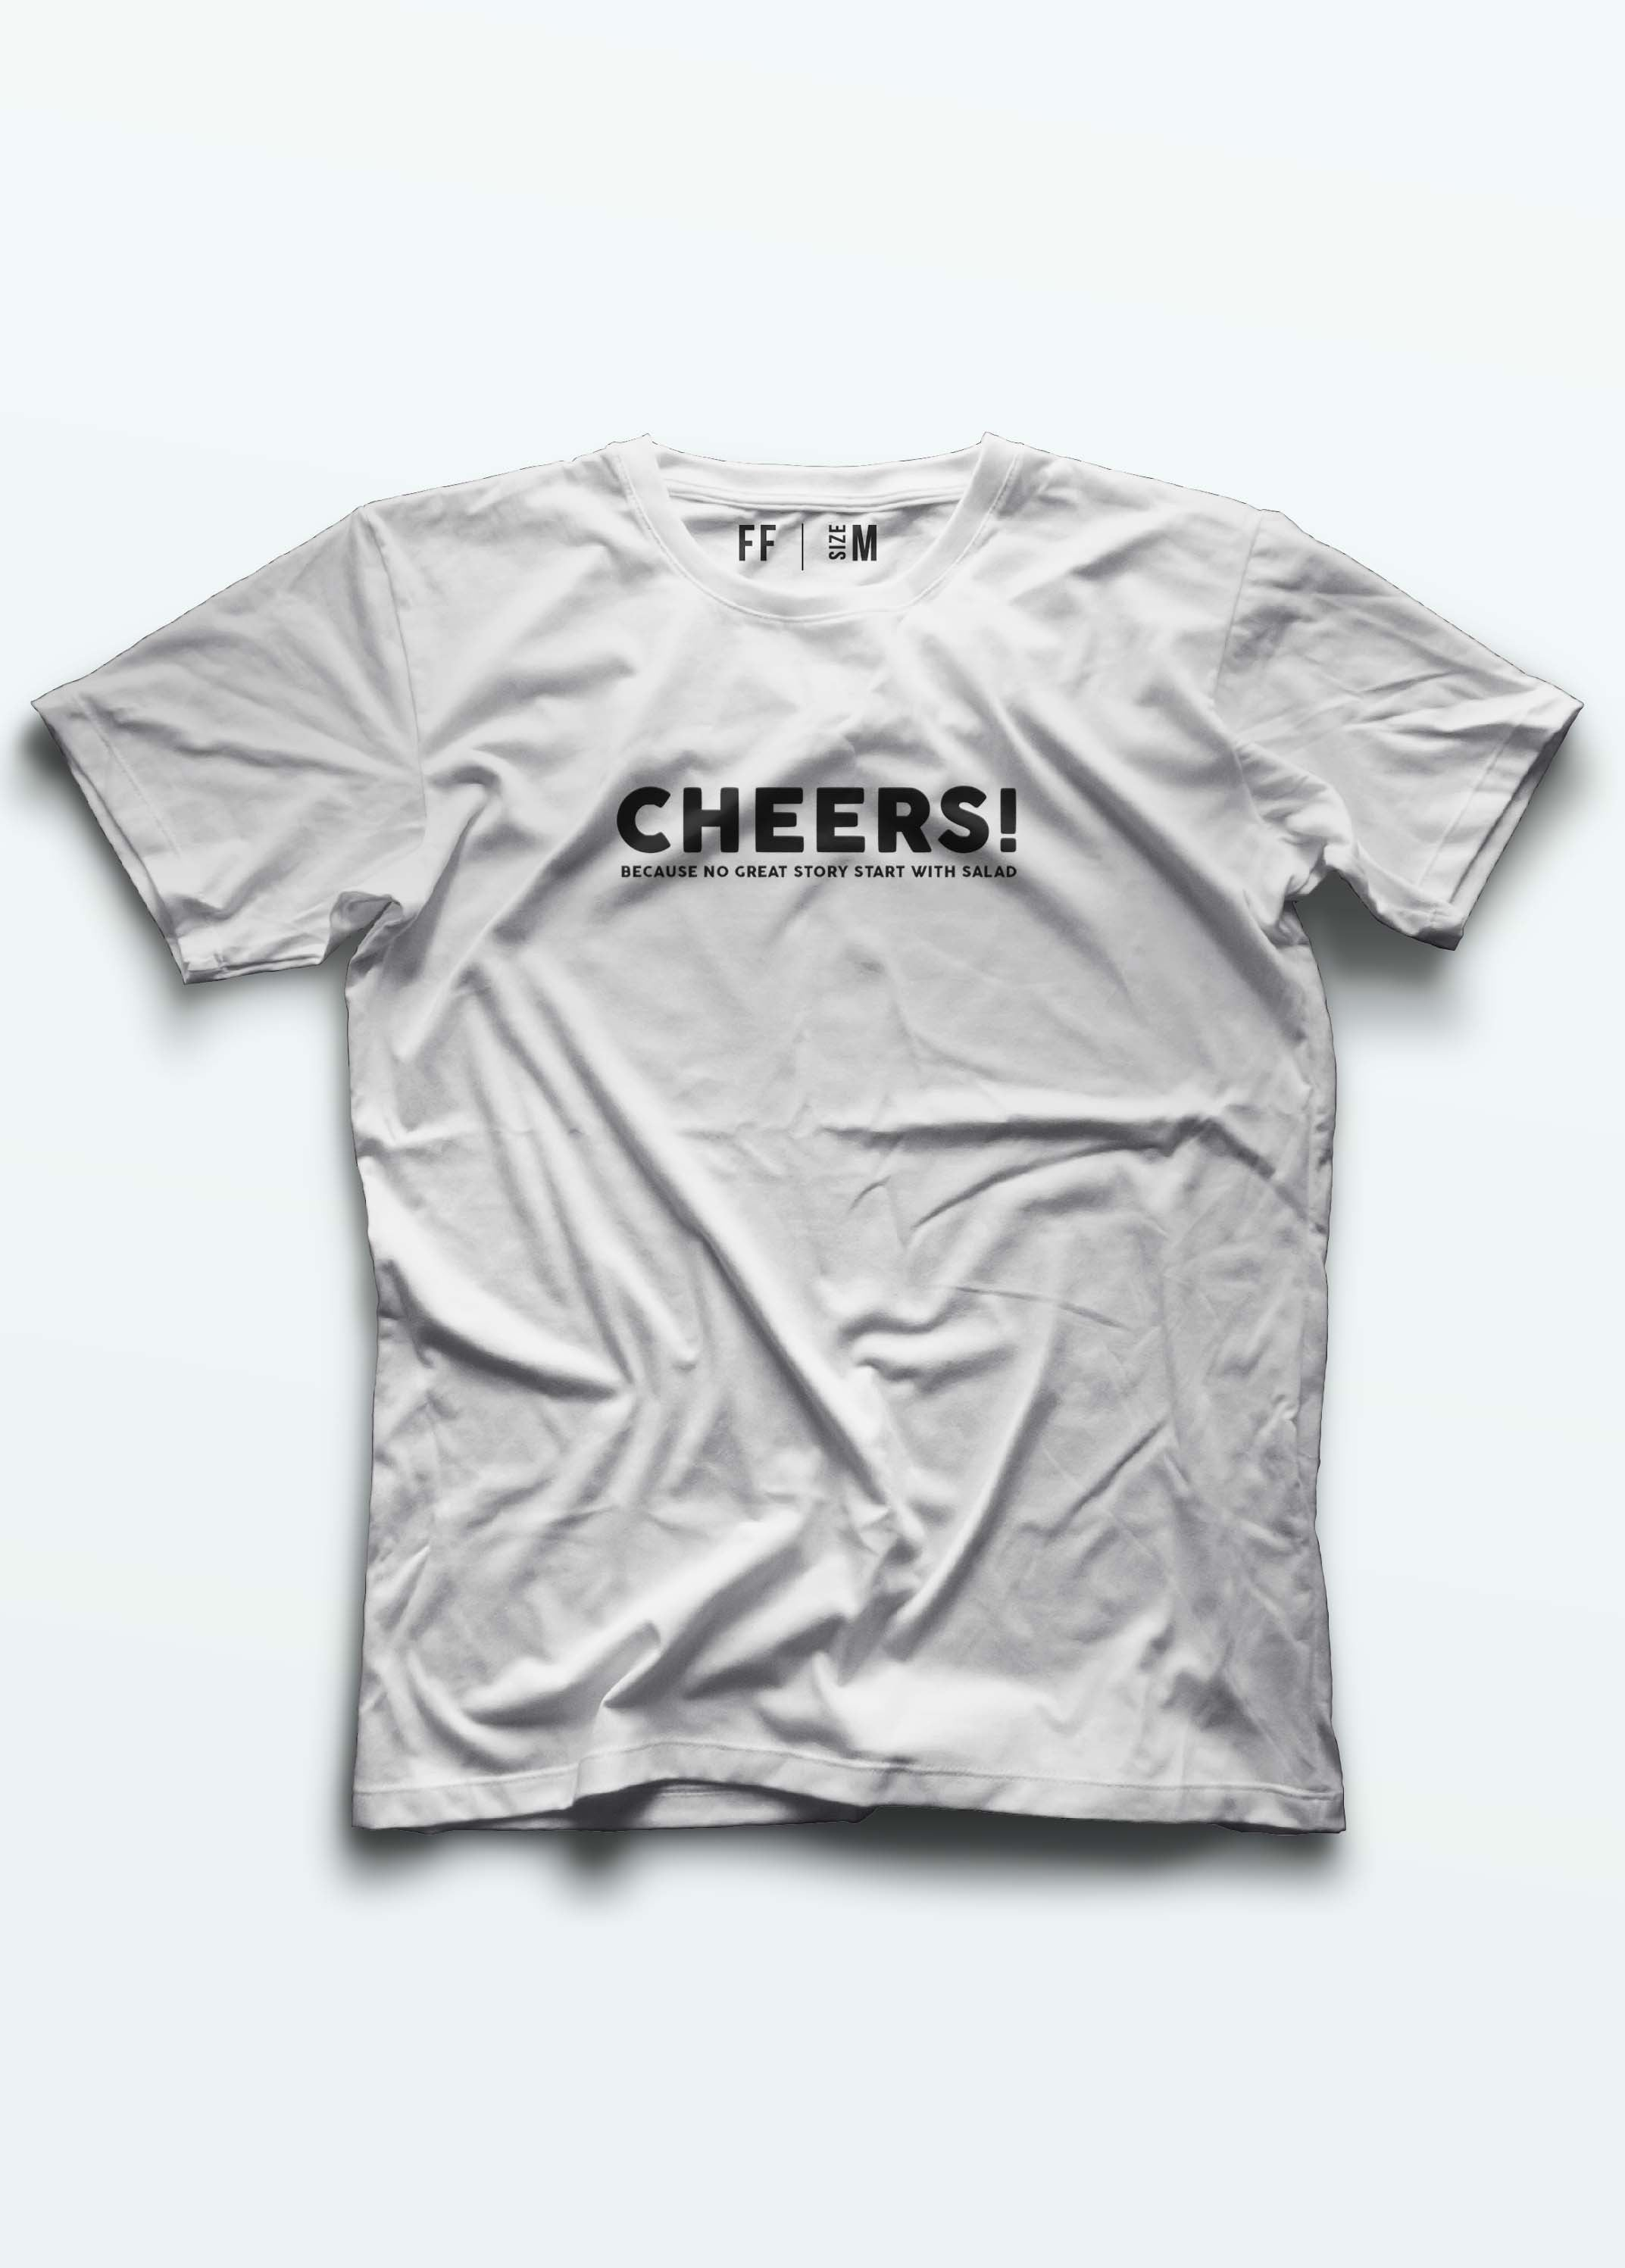 Cheers Because No Great Story Start With Salad / Unisex T-shirt